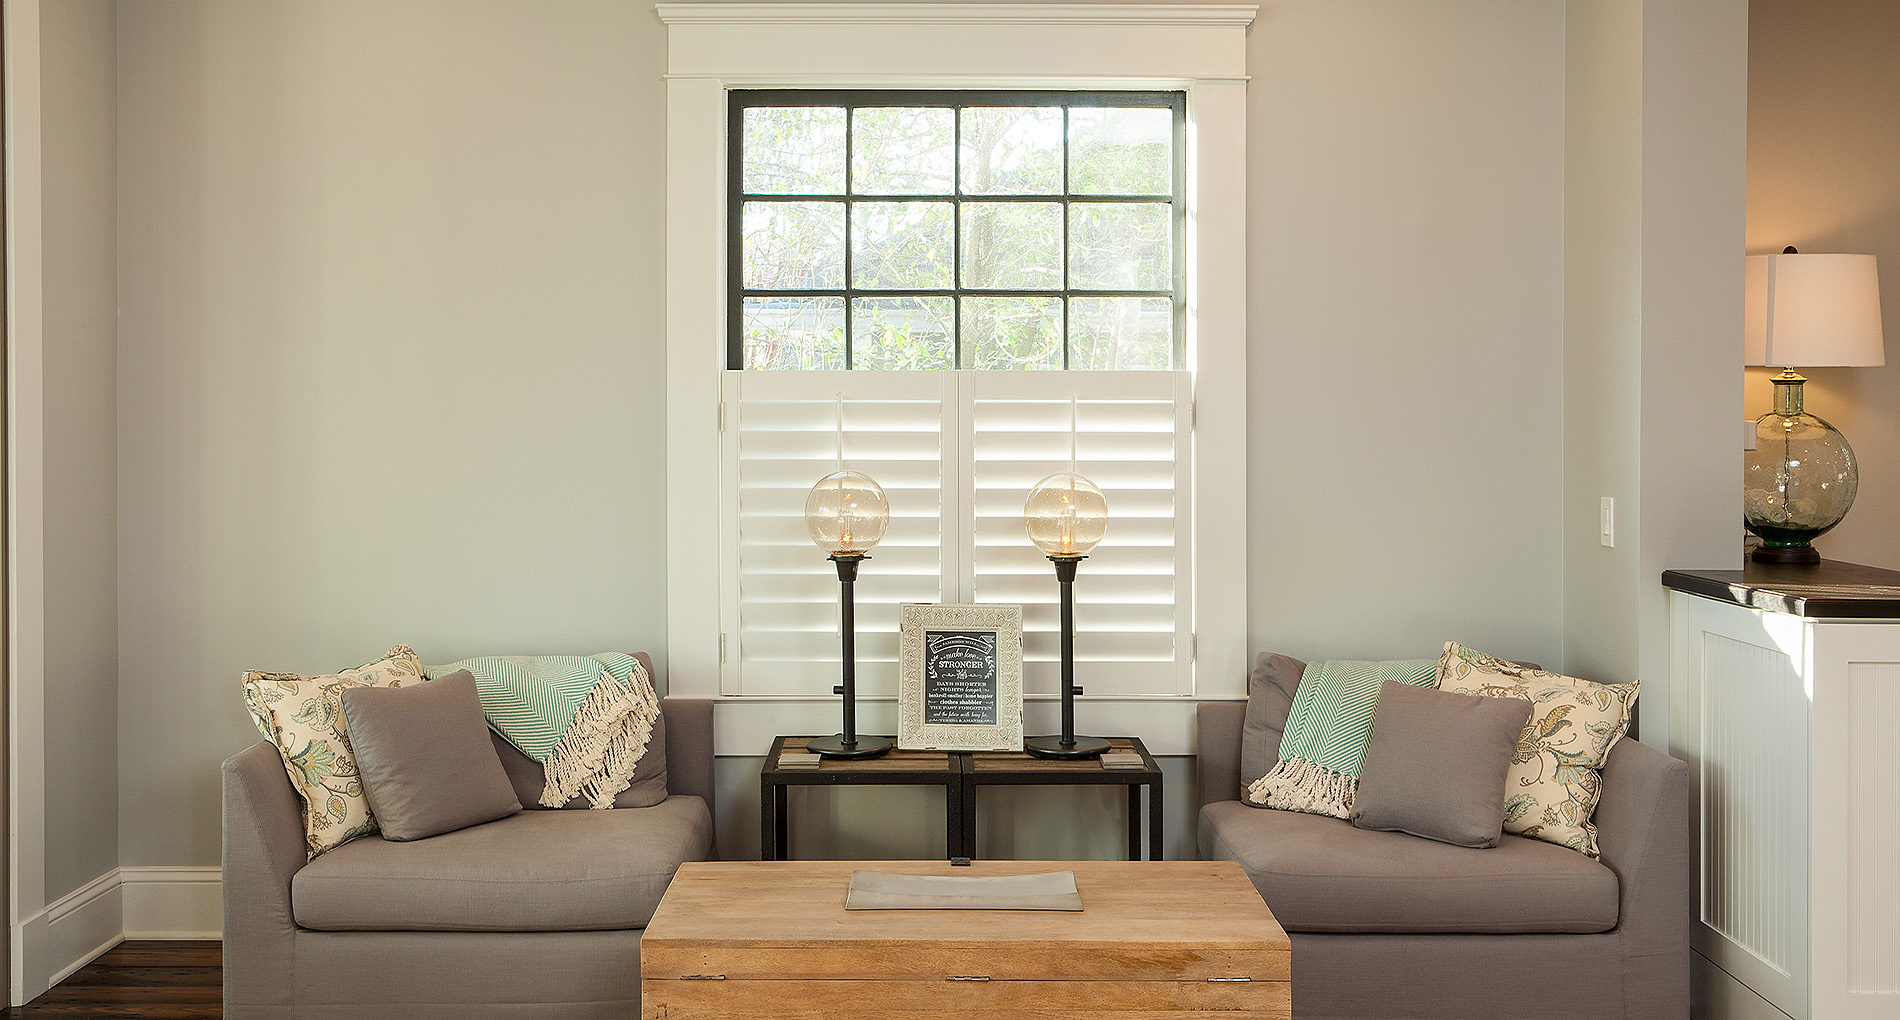 Home Remodeling Gallery Alair Homes Decatur